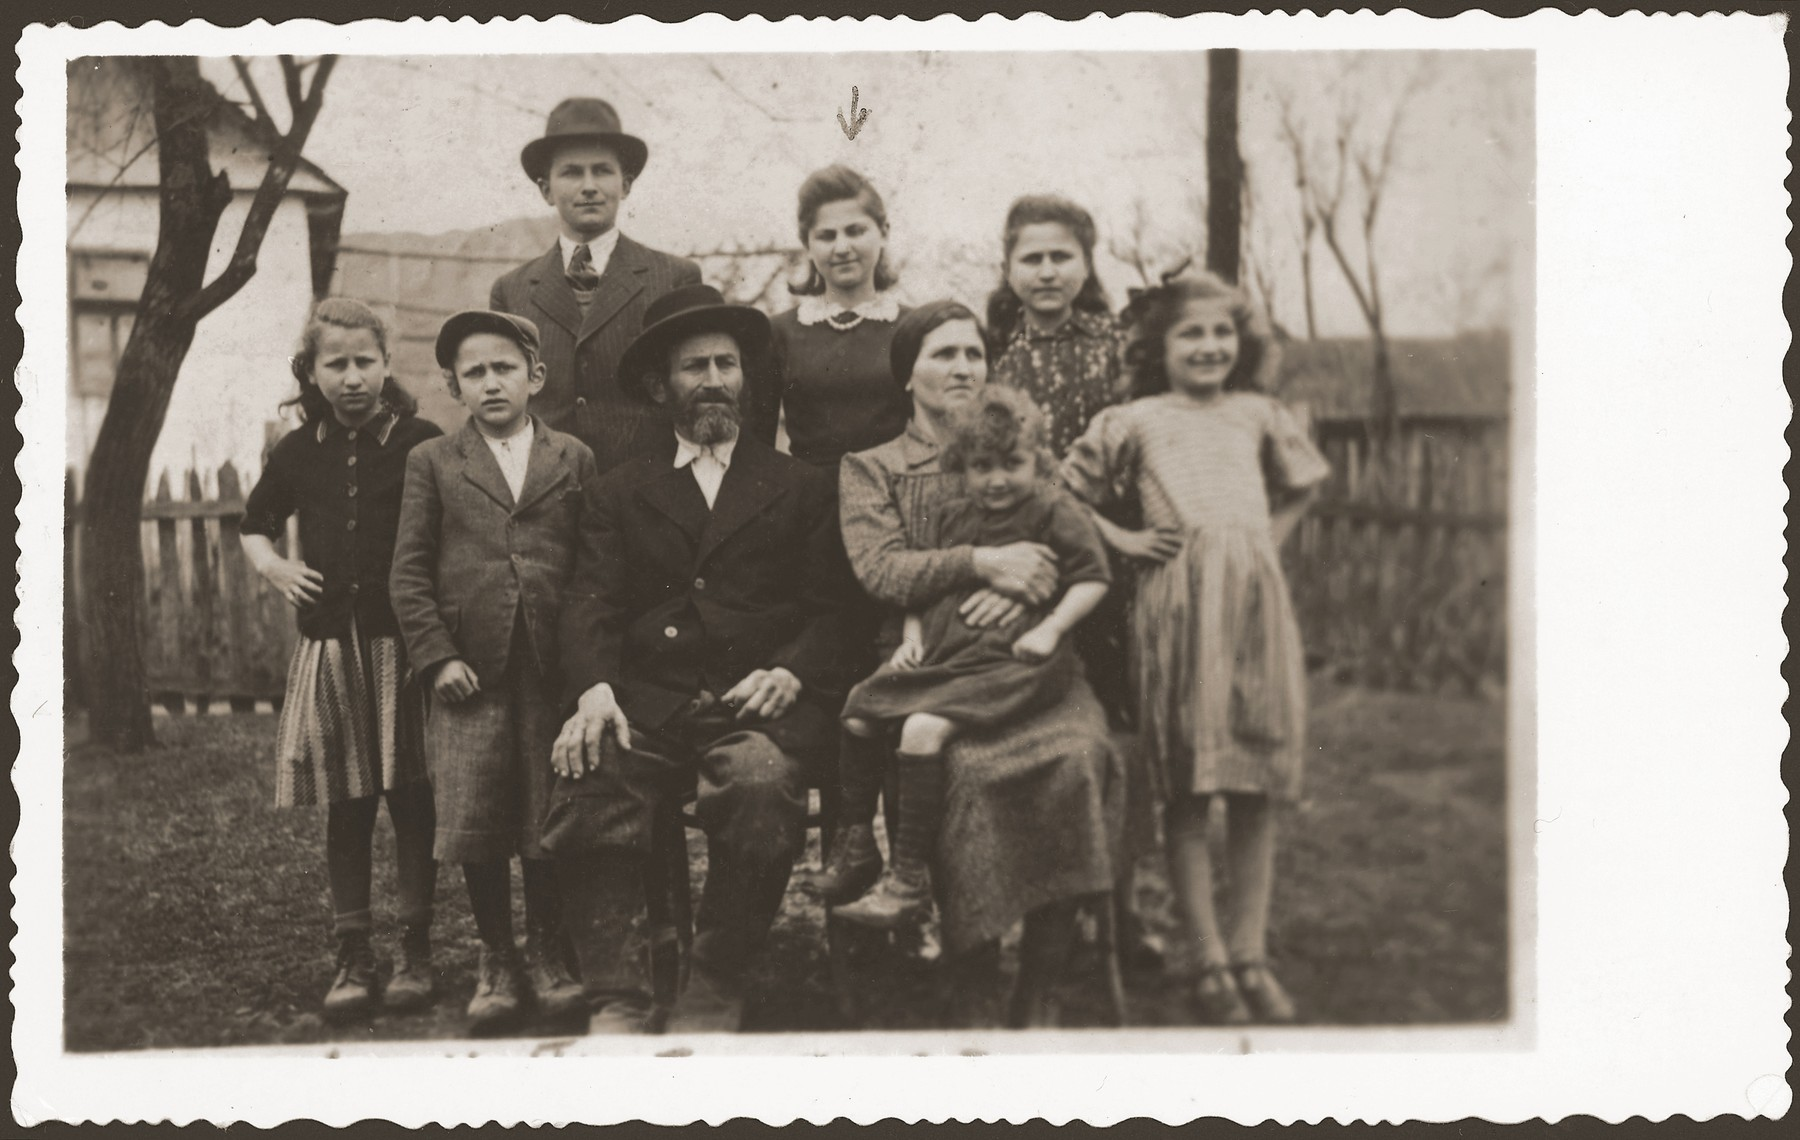 Group portrait of members of a Jewish family in the yard of their home in Volovec.    Pictured are members of the Kreisman family.  Frida Kreisman is in the back row, center.